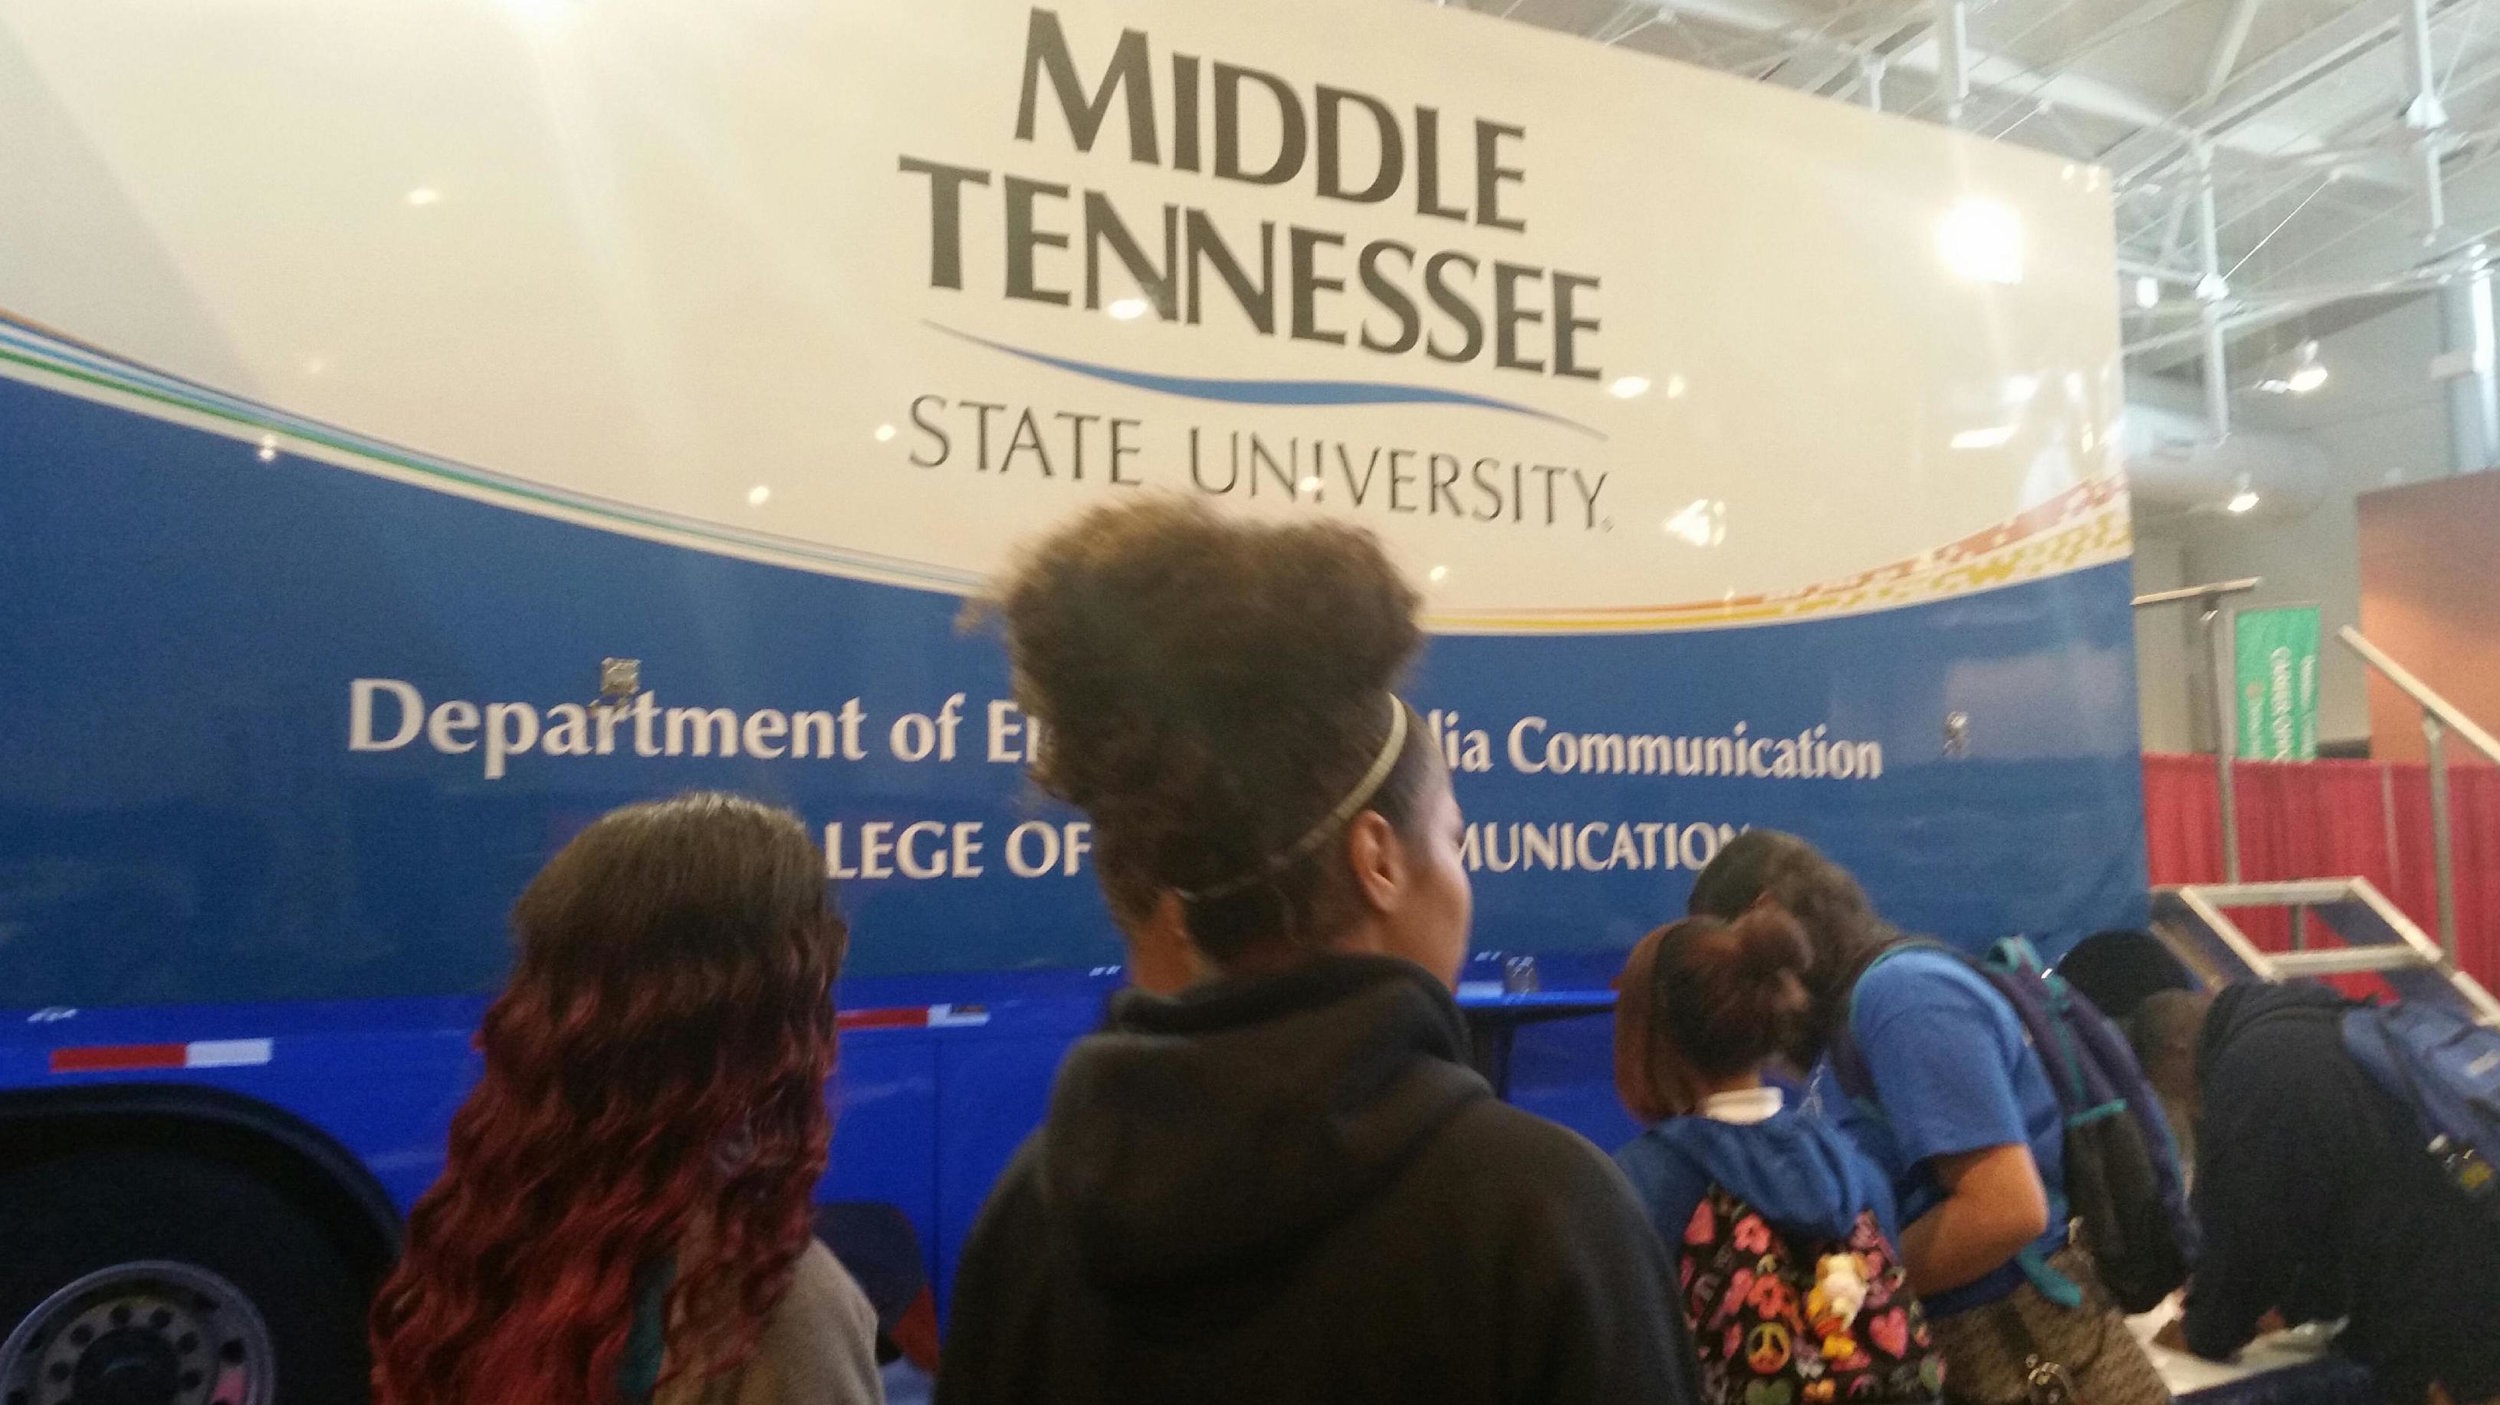 Middle Tennessee State University brought a mobile production lab for students to learn about television production careers.